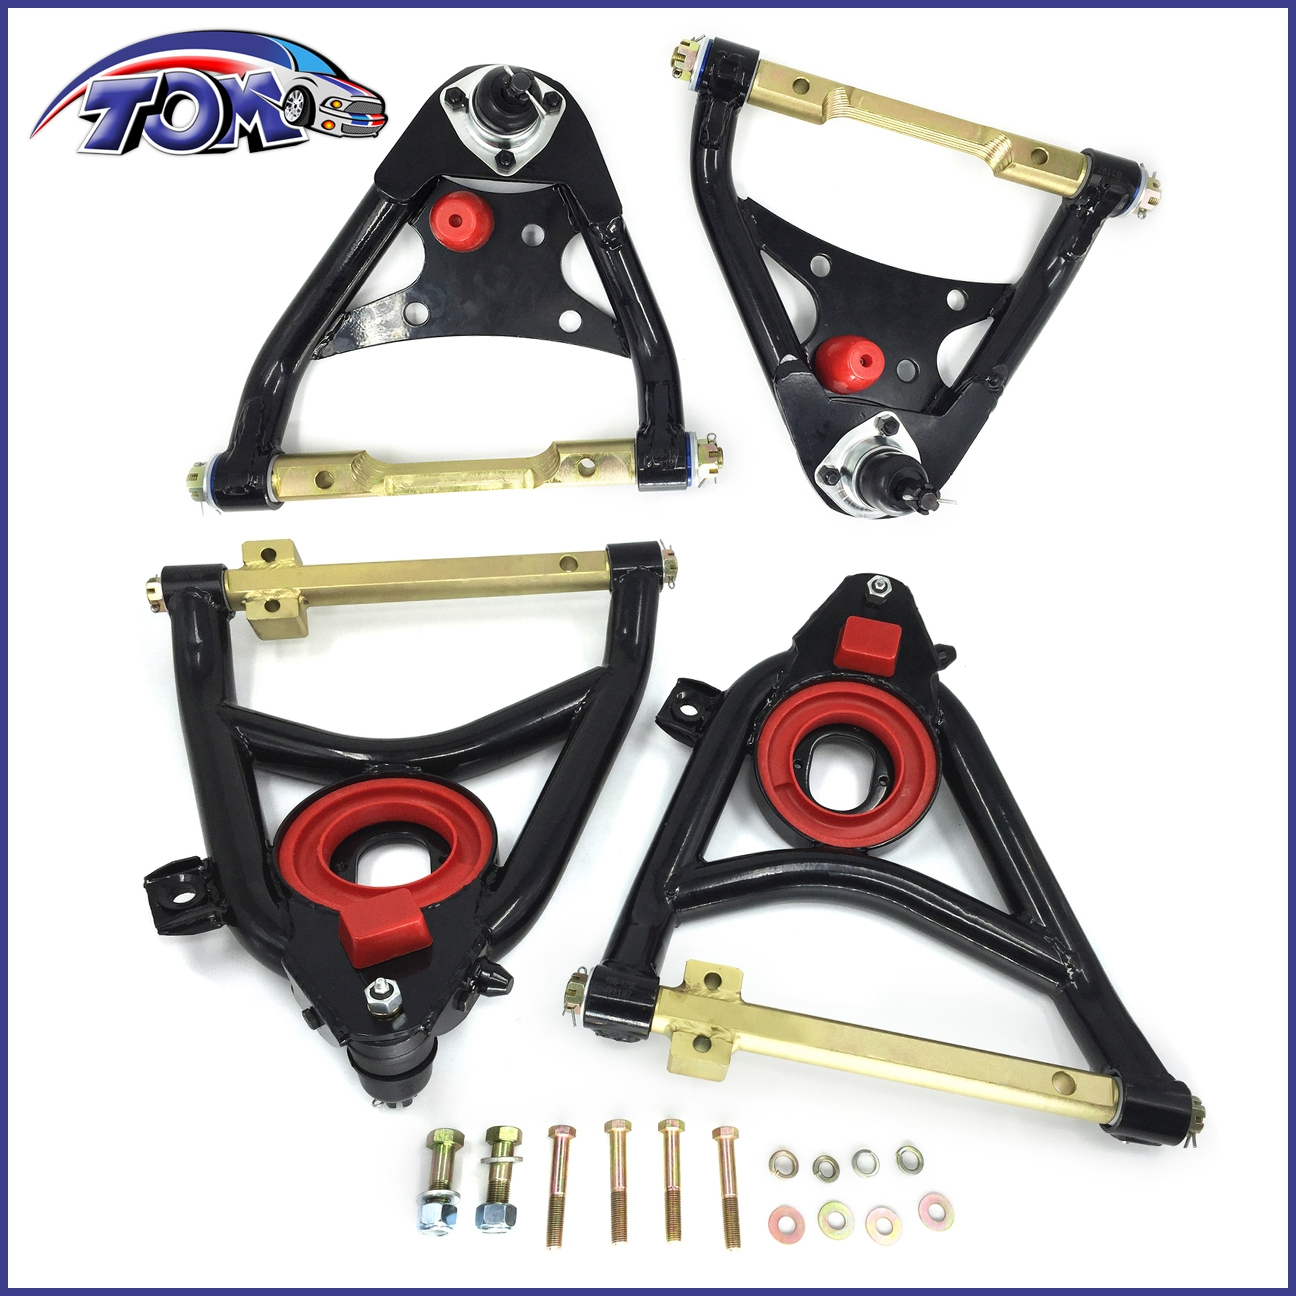 New Upper Lower Tubular Control Arms For 58 64 Chevy Impala Bel Wiring Diagram 1960 Chevrolet V8 Biscayne Belair And Air